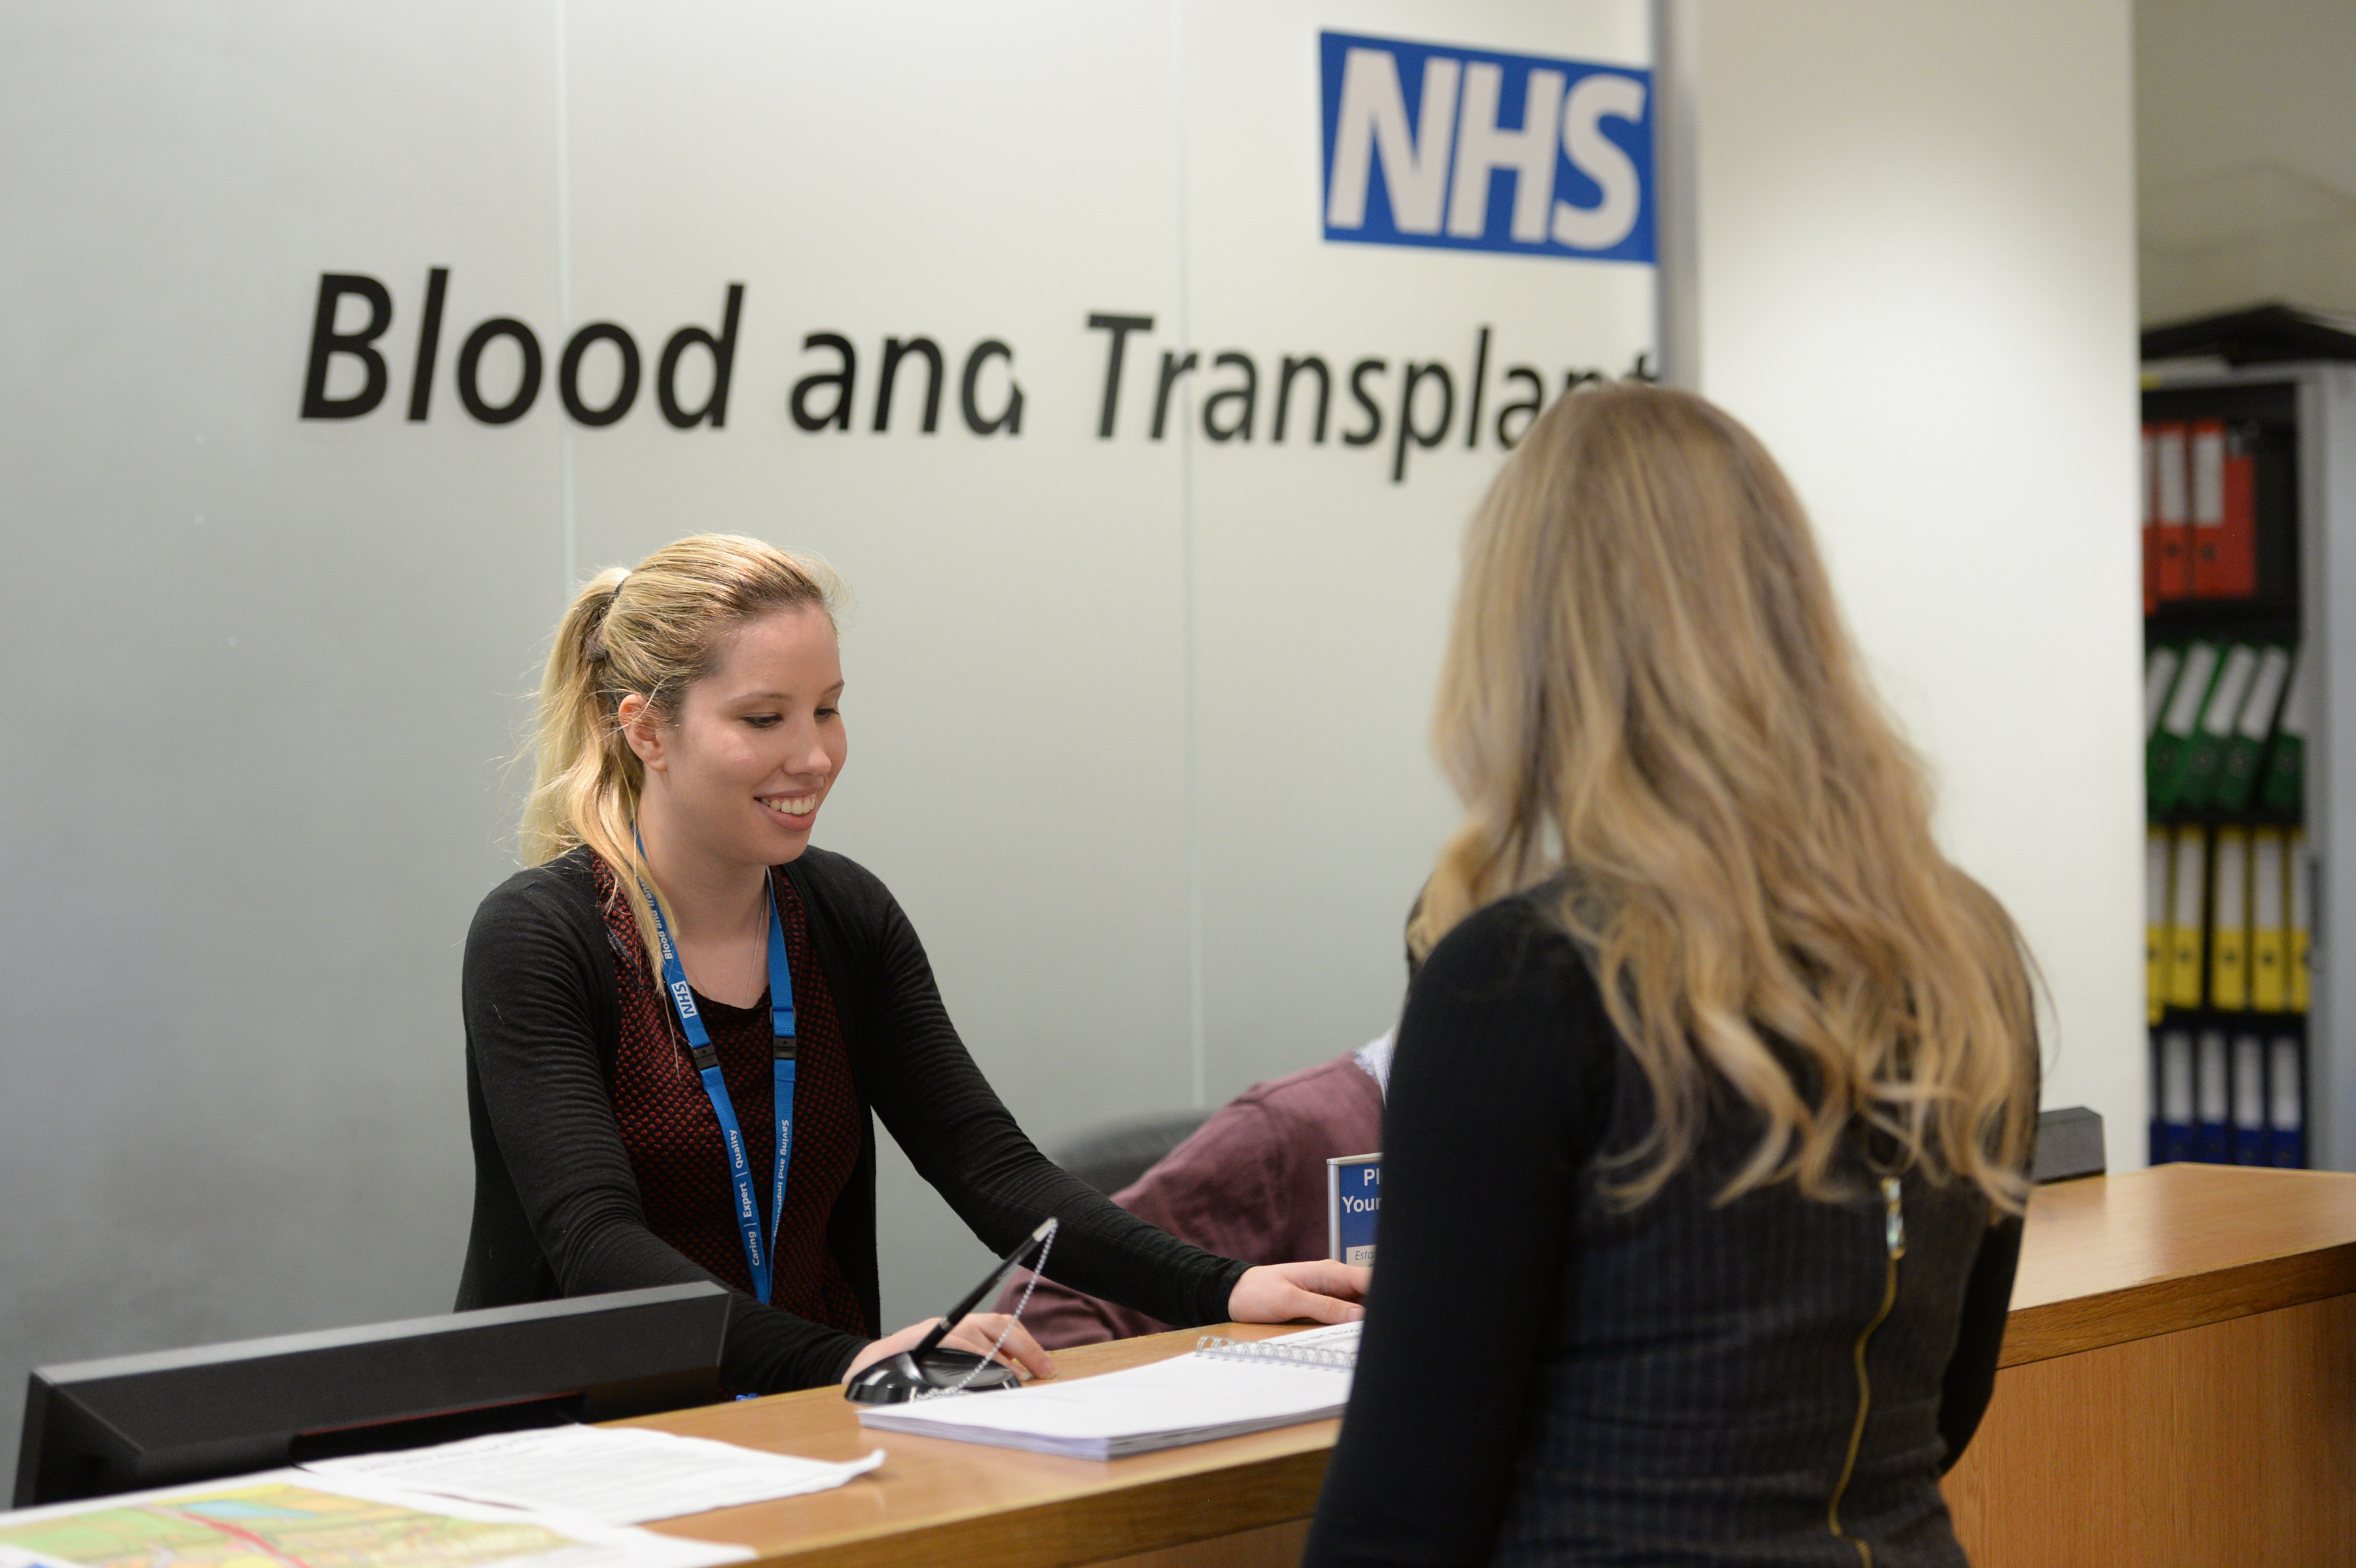 Staff at NHSBT Filton welcome a visitor